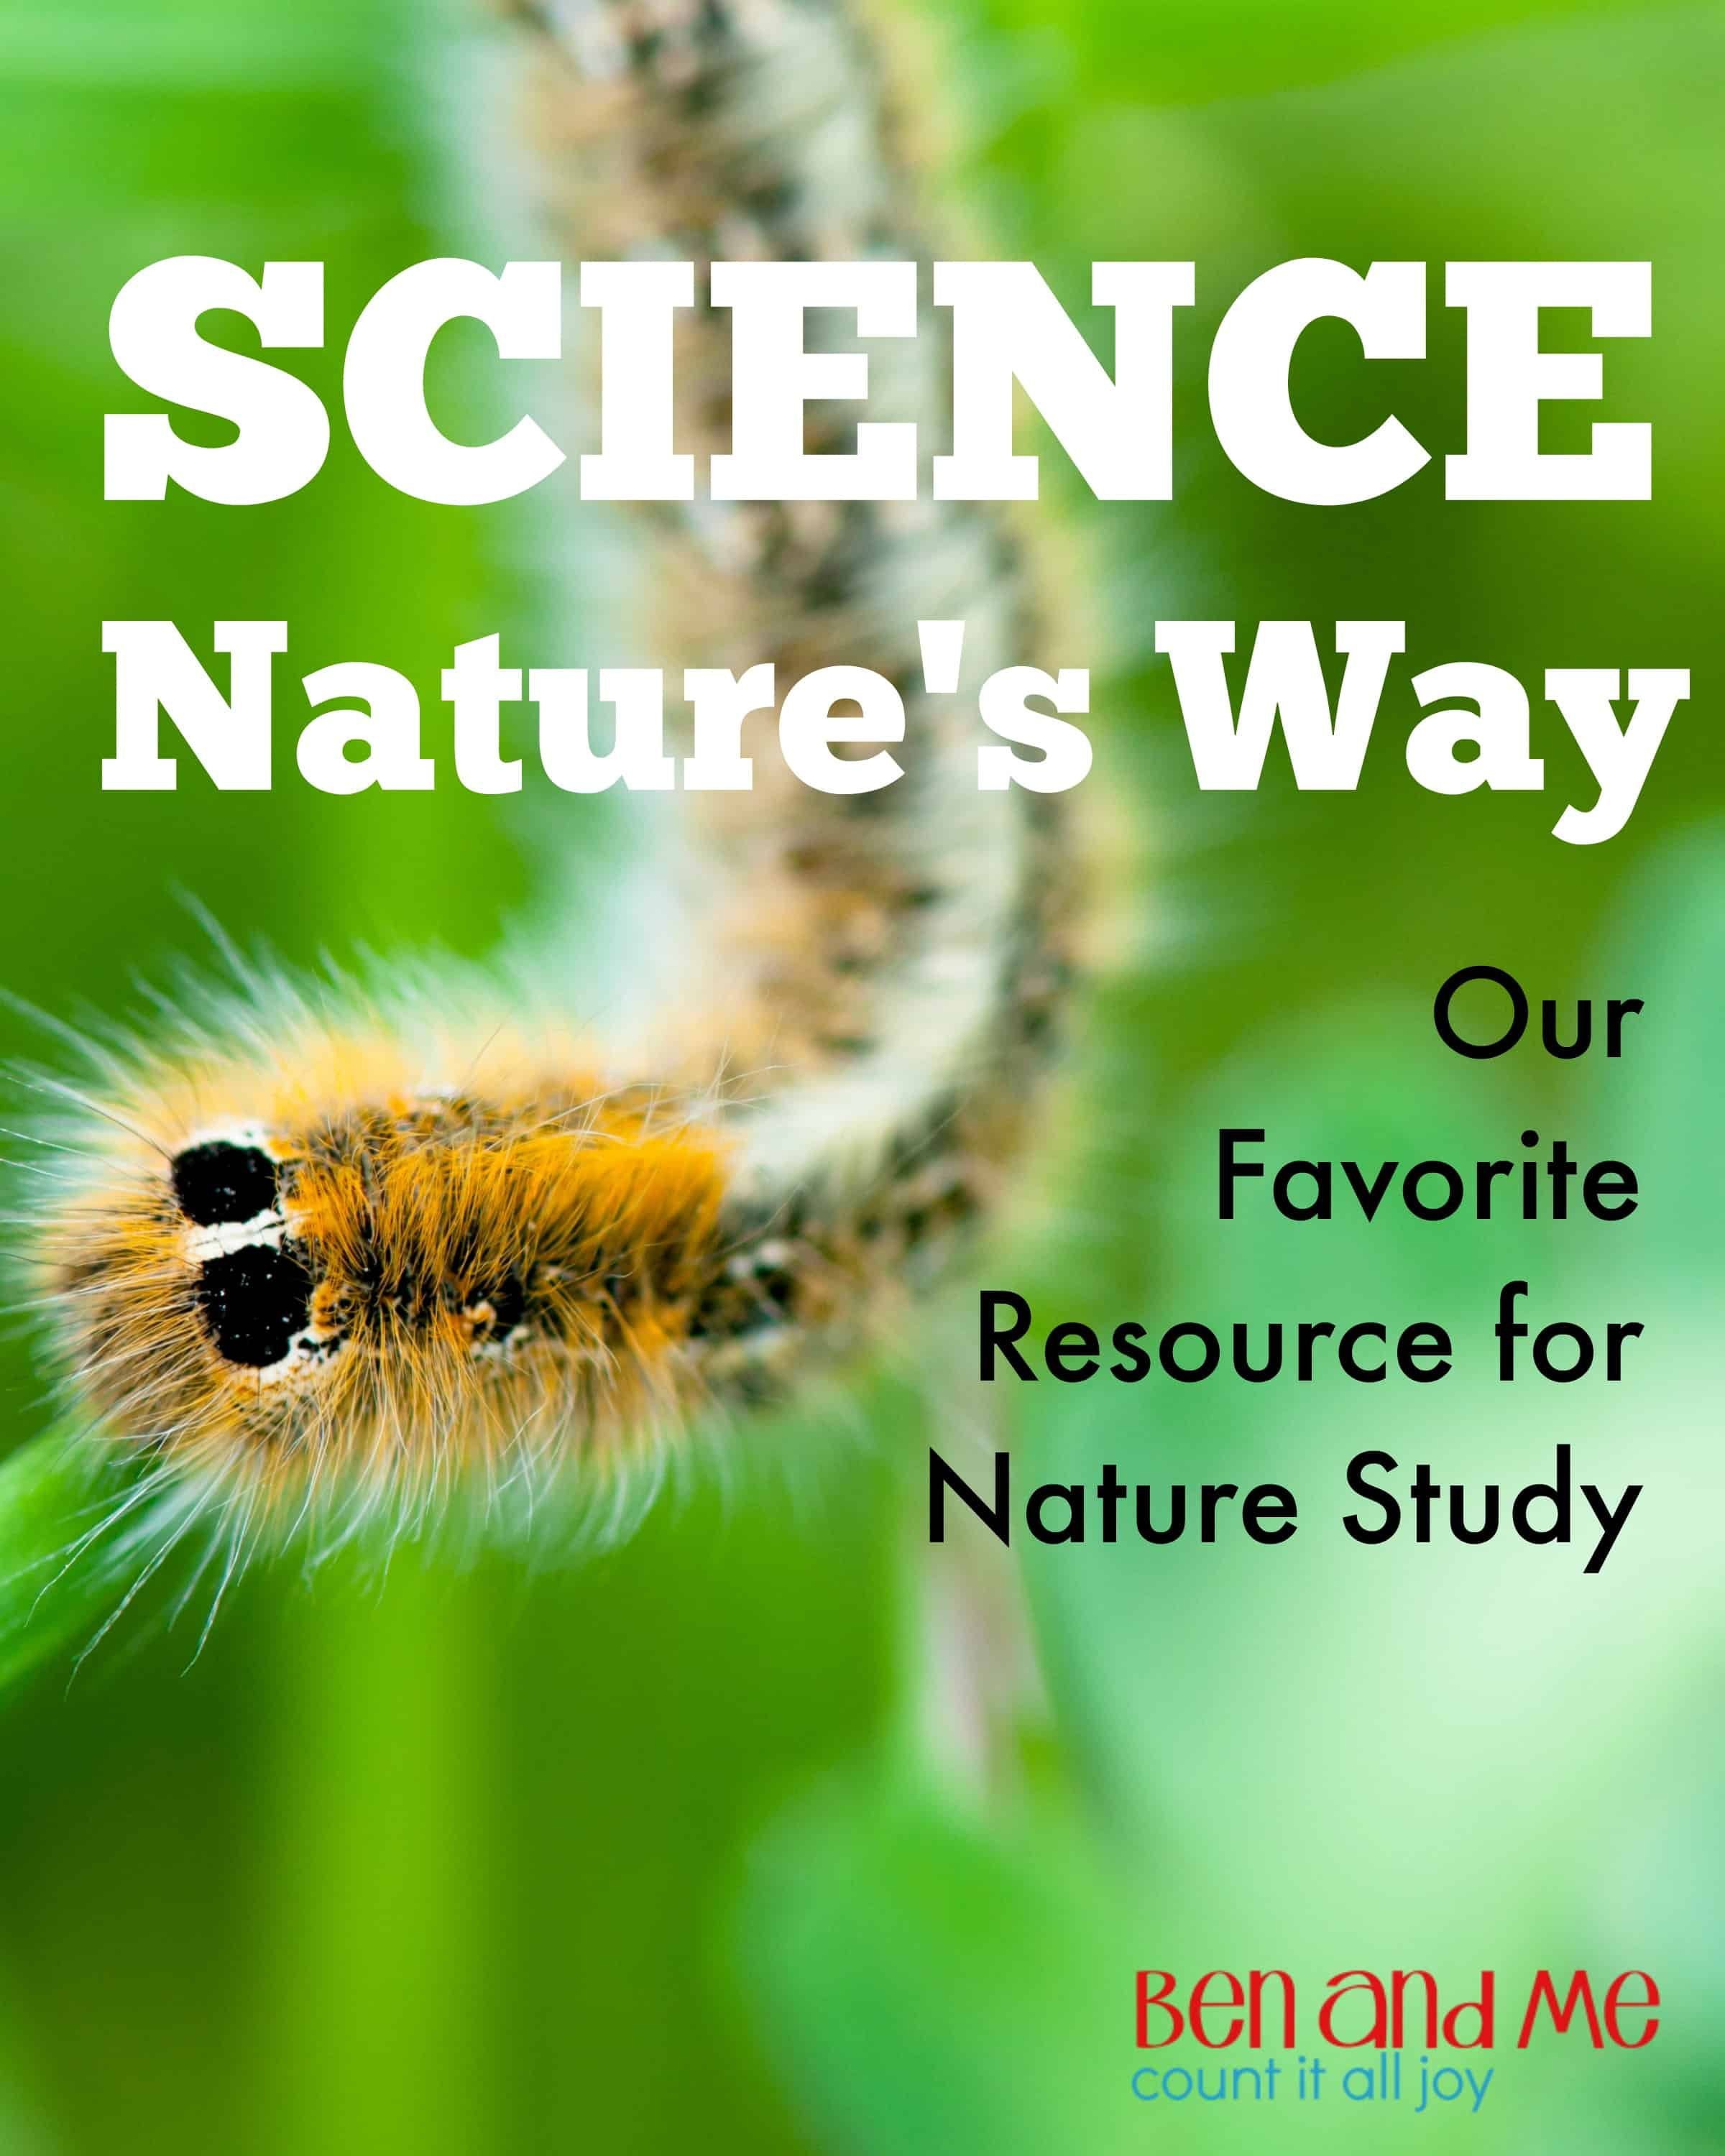 Science with Nature Study (our favorite resource)